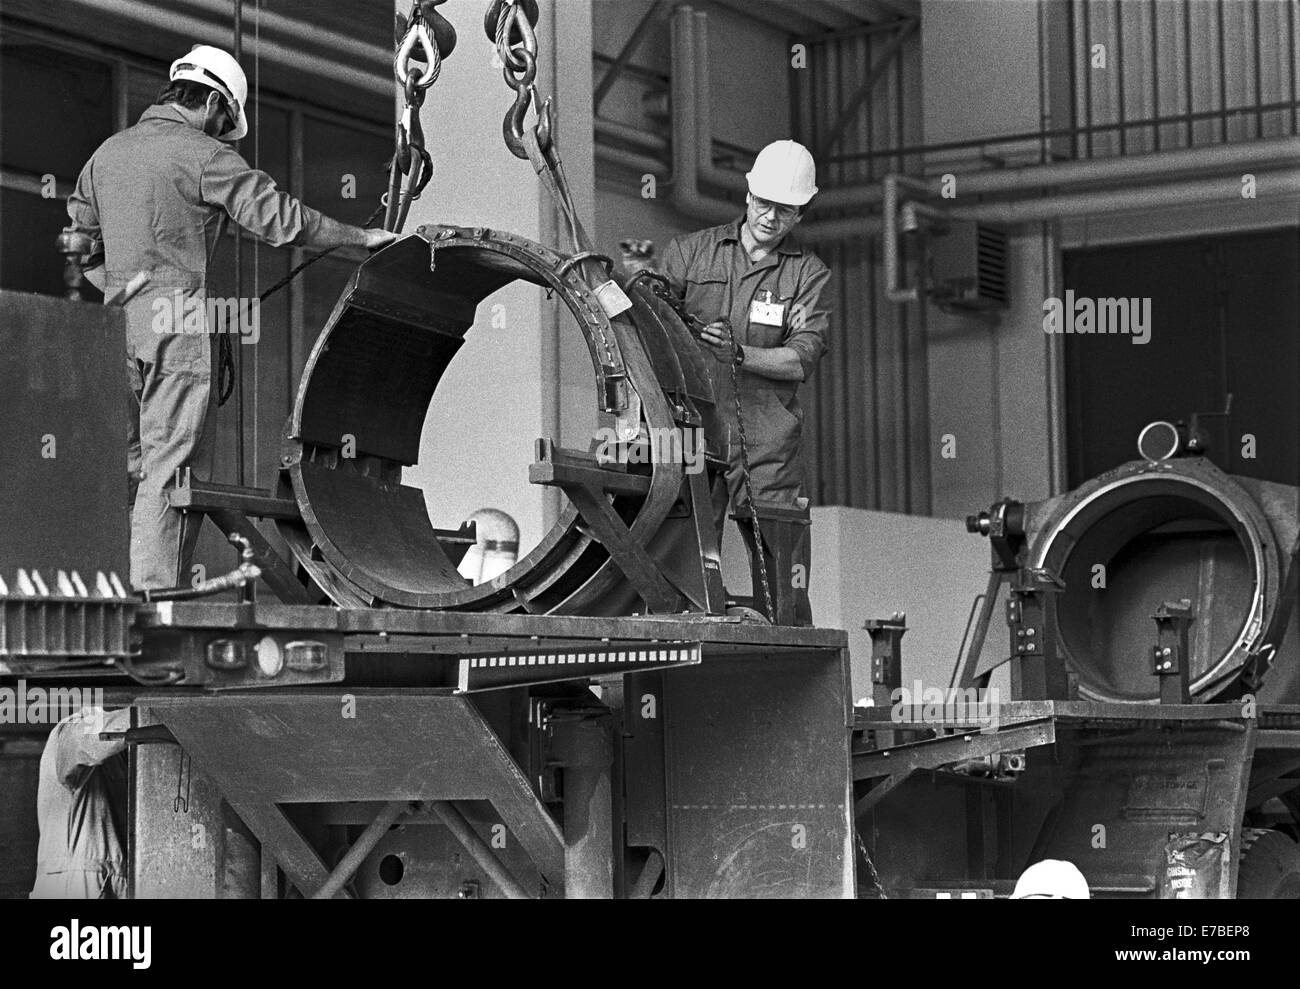 Hausen (Frankfurt), demolition of launchers for nuclear missiles Pershing II after INF treaty between USA and Soviet - Stock Image